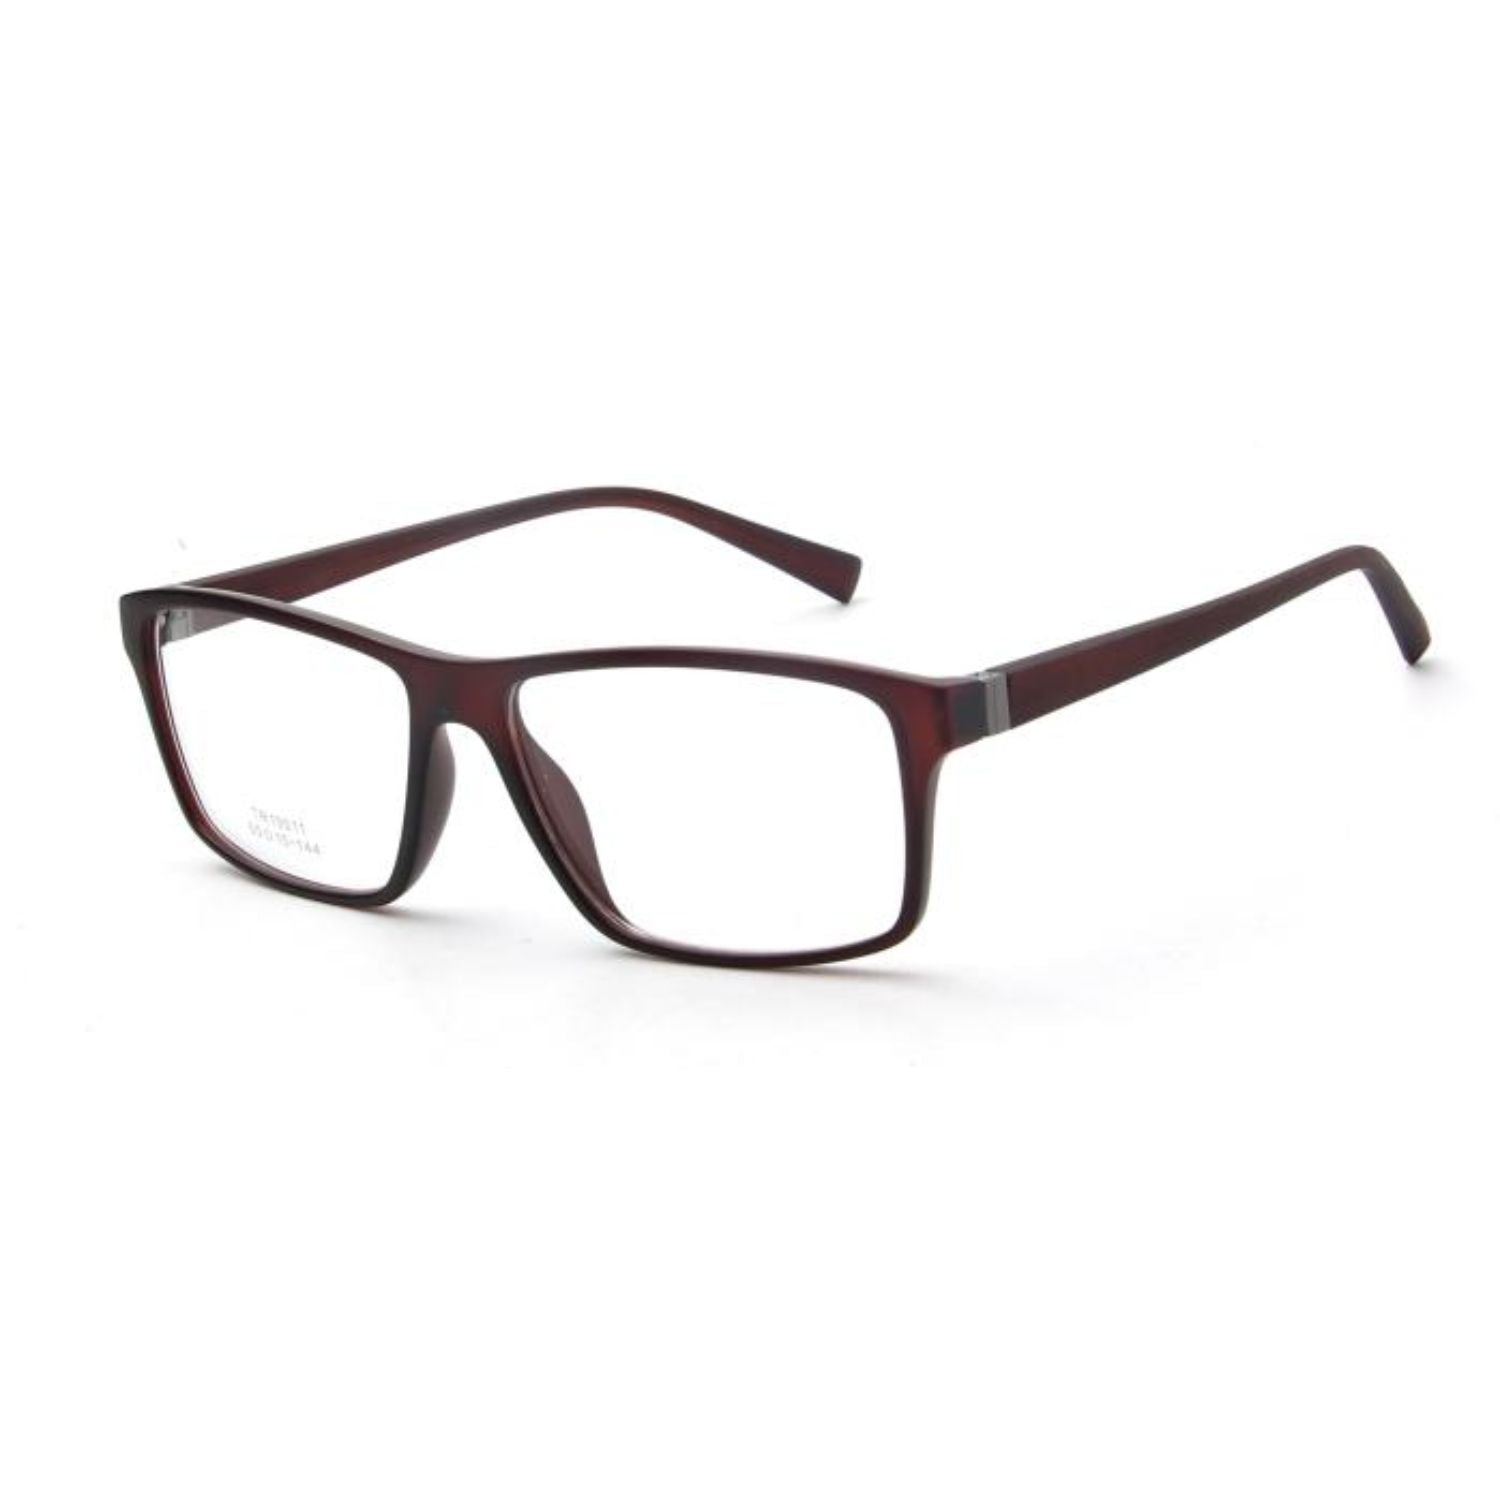 OTR20 - Classic Rectangle Fashion Optical Eyeglasses - Iris Fashion Inc. | Wholesale Sunglasses and Glasses